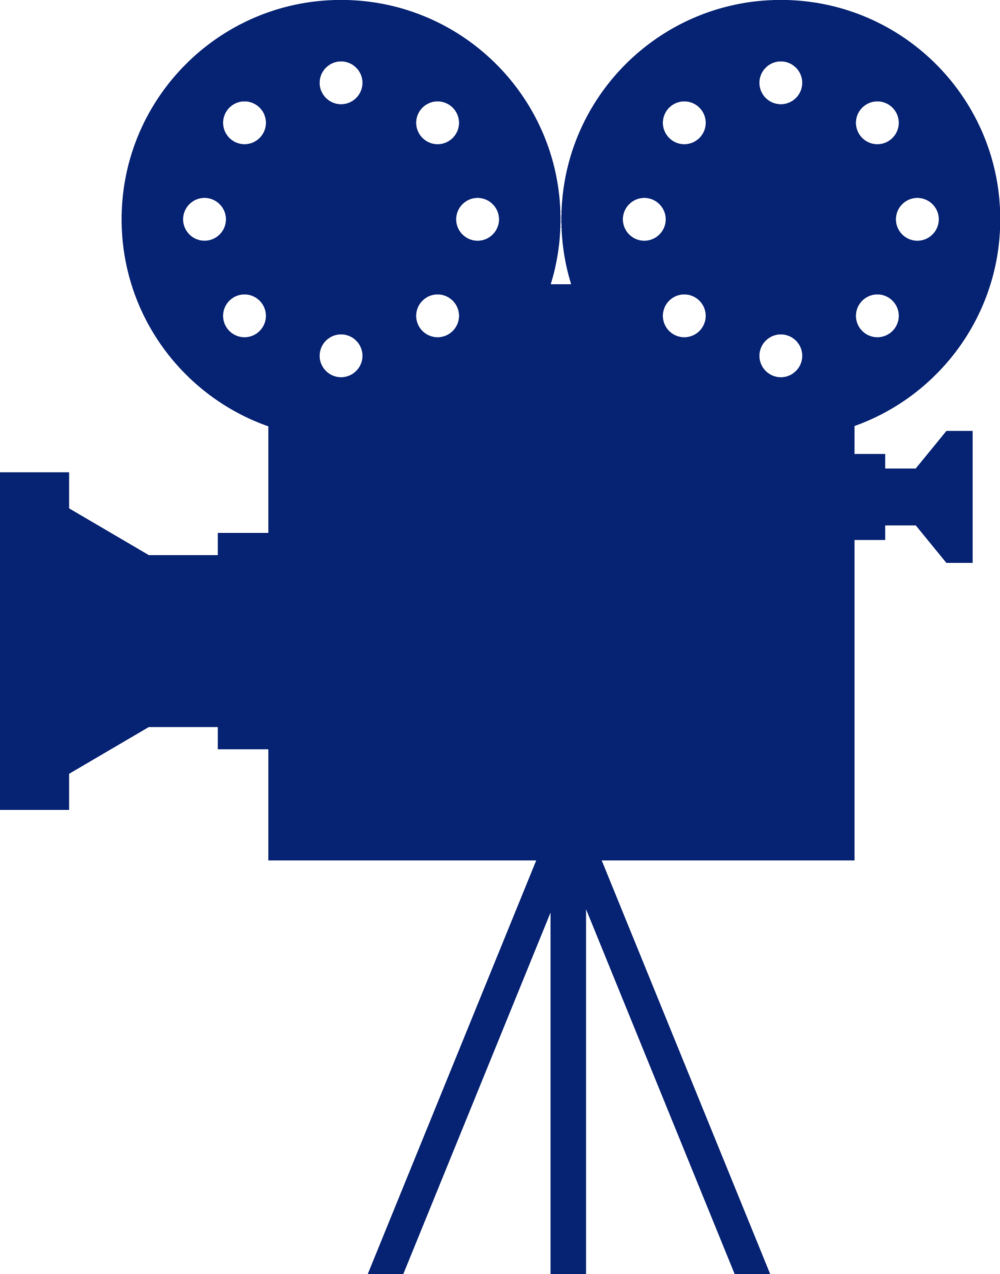 Film Camera Blue.png